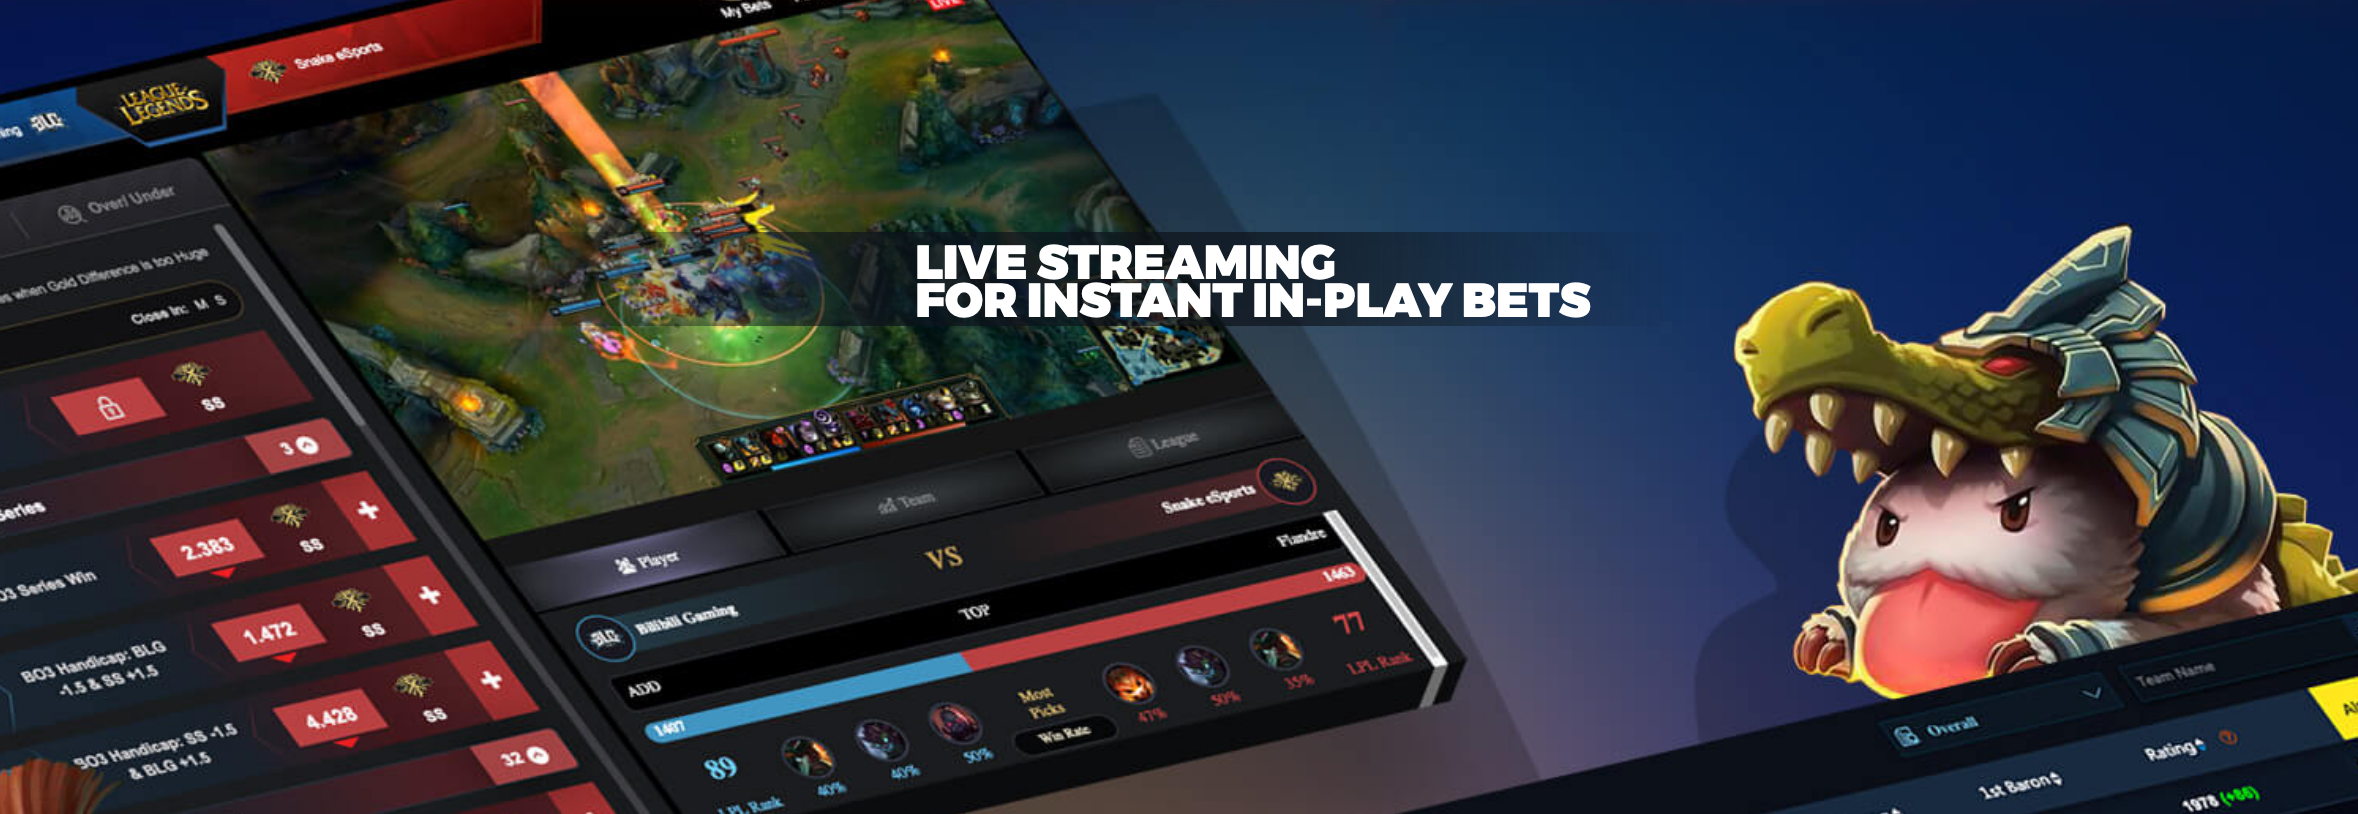 IMEsports LIVE STREAMING FOR INSTANT IN-PLAY BETS